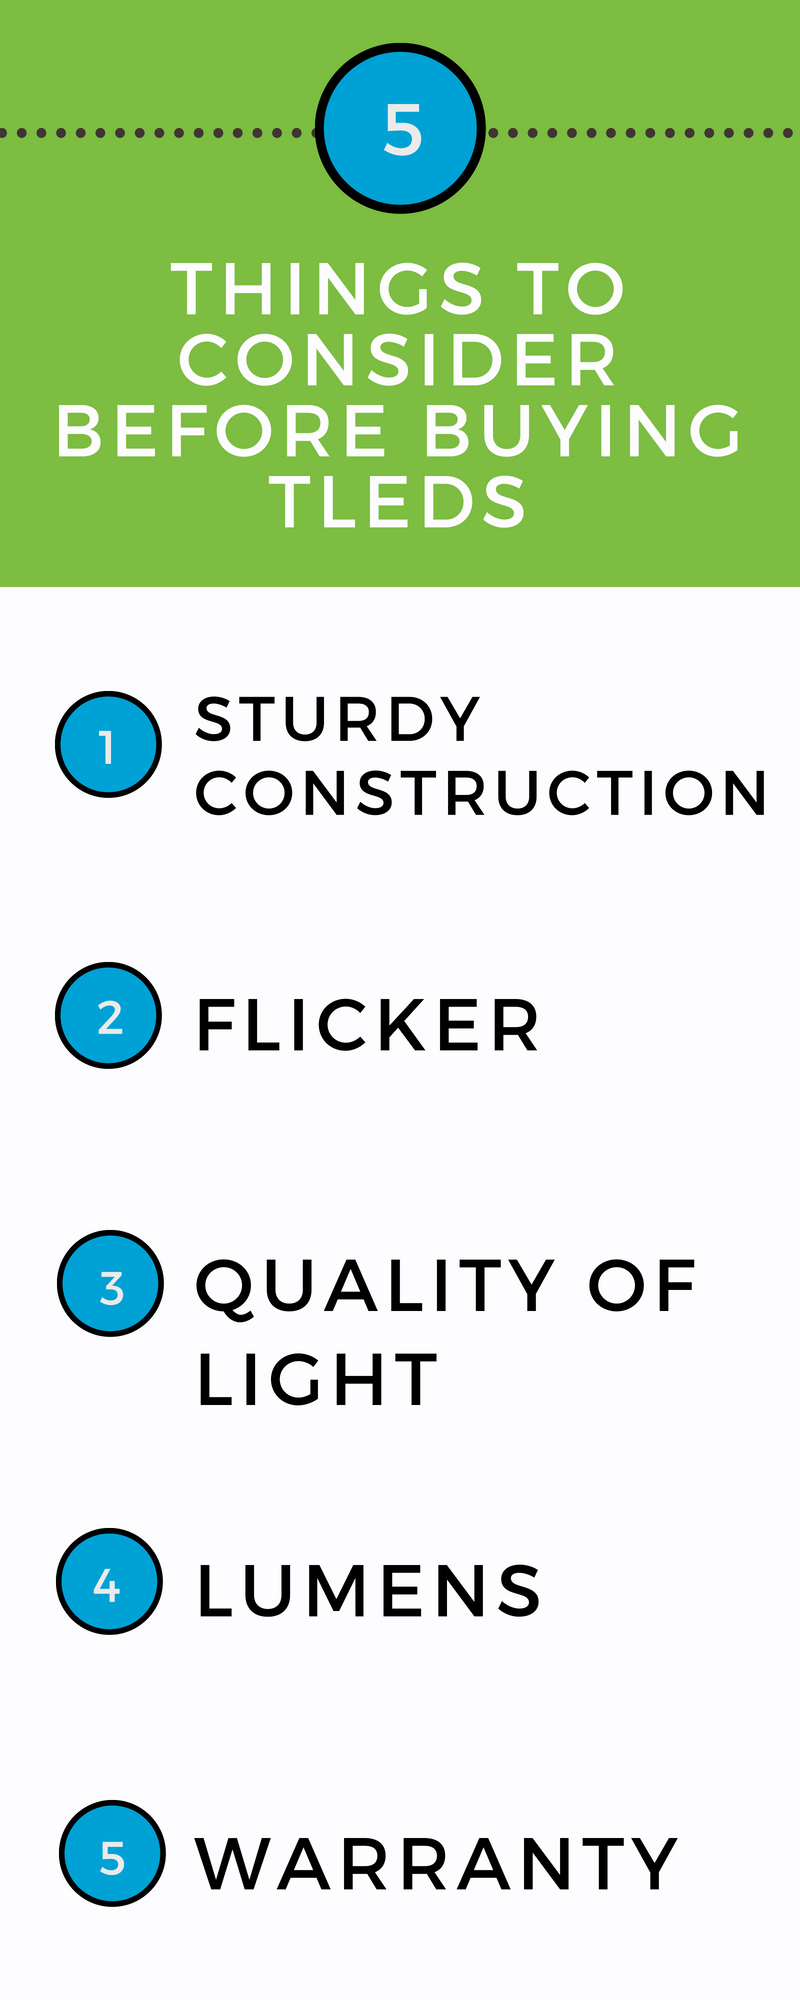 5 Things to Consider before Purchasing TLEDs infographic